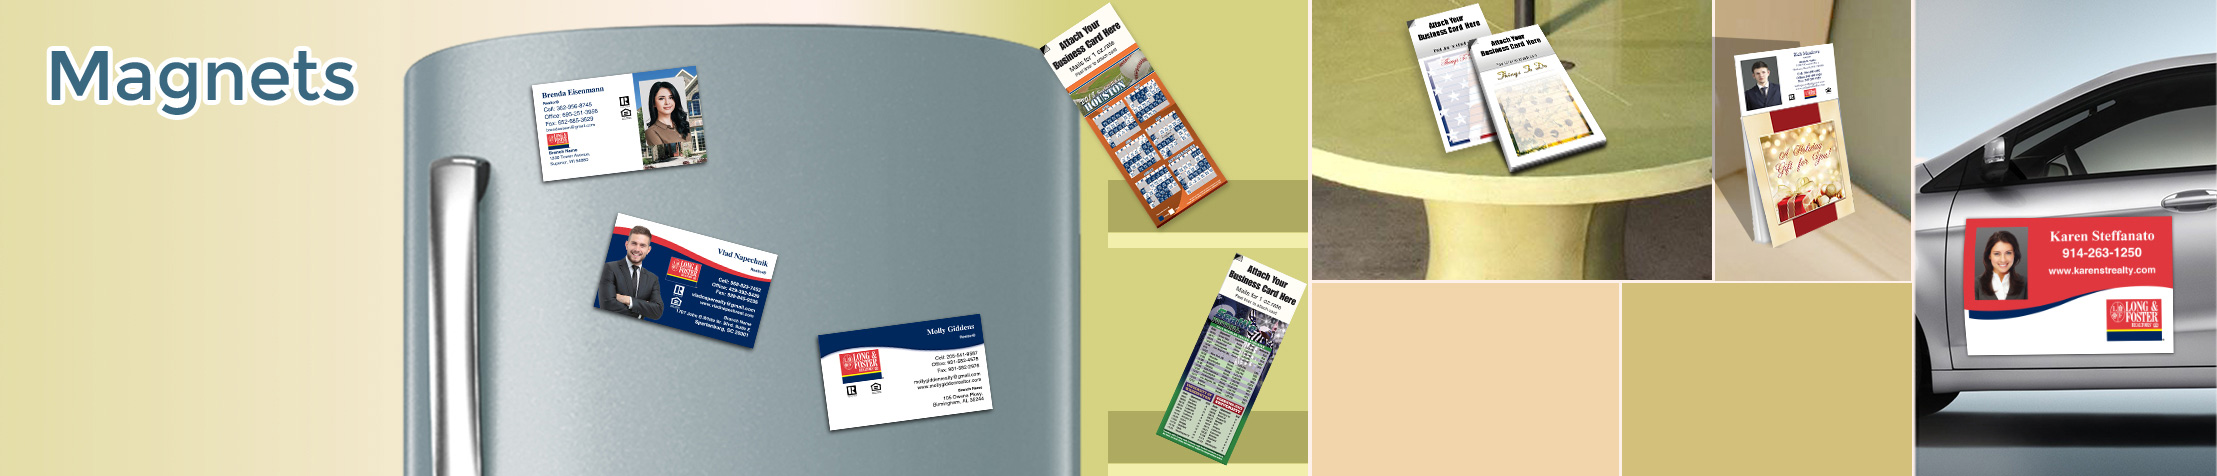 Long and Foster Real Estate Magnets - Long and Foster car magnets, sports schedules, calendar magnets | BestPrintBuy.com